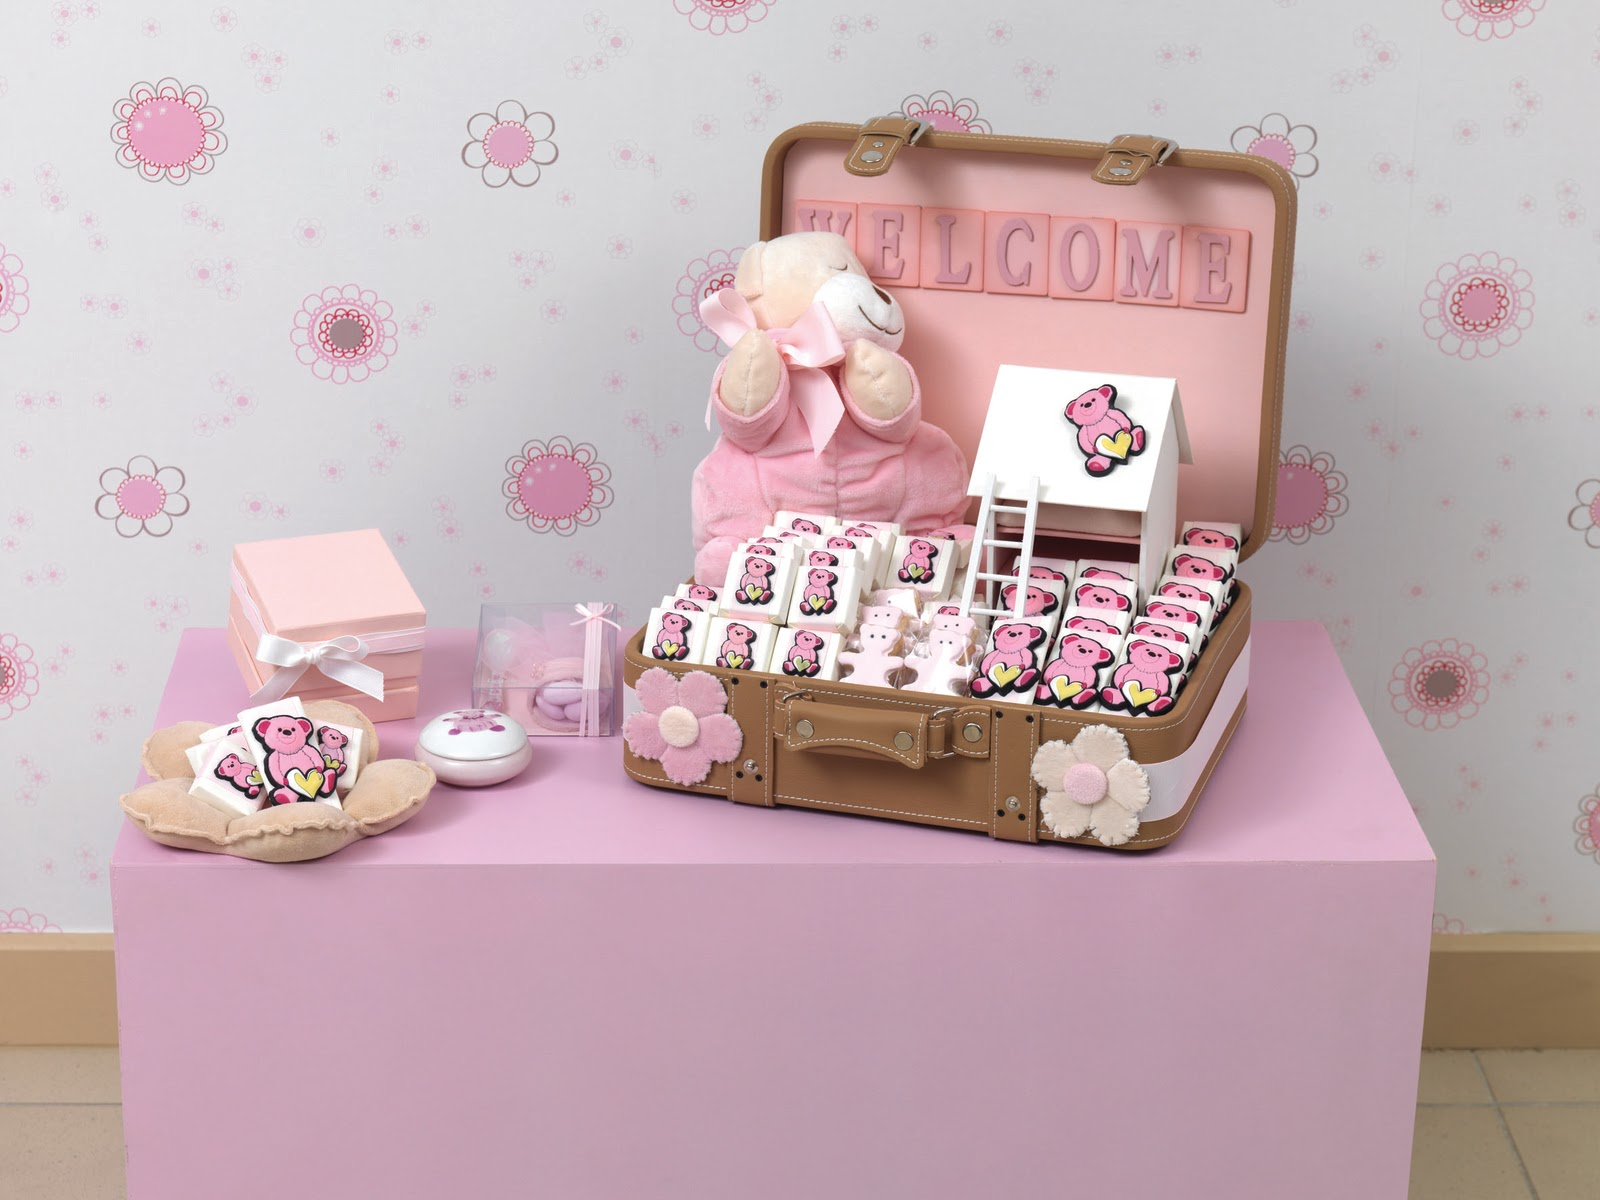 Teddy Bears Butterflies Flowers Stars And Animals Adorn Patchi Baby Chocolates Souvenirs One May Choose From The New Collections Introduced Every